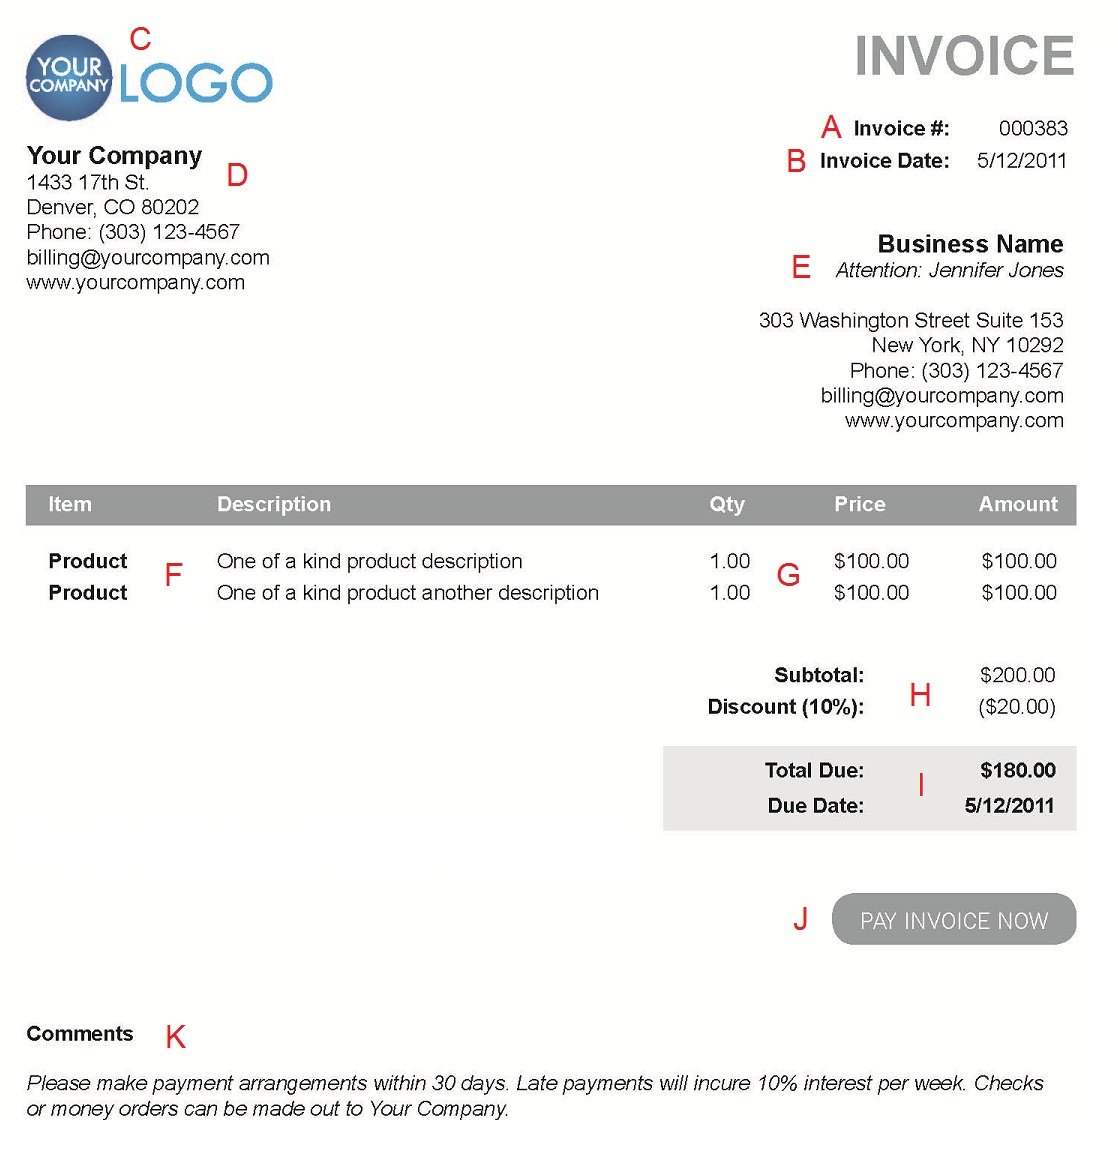 Atvingus  Stunning The  Different Sections Of An Electronic Payment Invoice With Gorgeous A  With Cool Sample Pro Forma Invoice Also Online Invoice Payment System In Addition Blank Invoice Template Microsoft Word And What Is A Cash Invoice As Well As How To Make A Proforma Invoice Additionally Ato Invoice From Paysimplecom With Atvingus  Gorgeous The  Different Sections Of An Electronic Payment Invoice With Cool A  And Stunning Sample Pro Forma Invoice Also Online Invoice Payment System In Addition Blank Invoice Template Microsoft Word From Paysimplecom